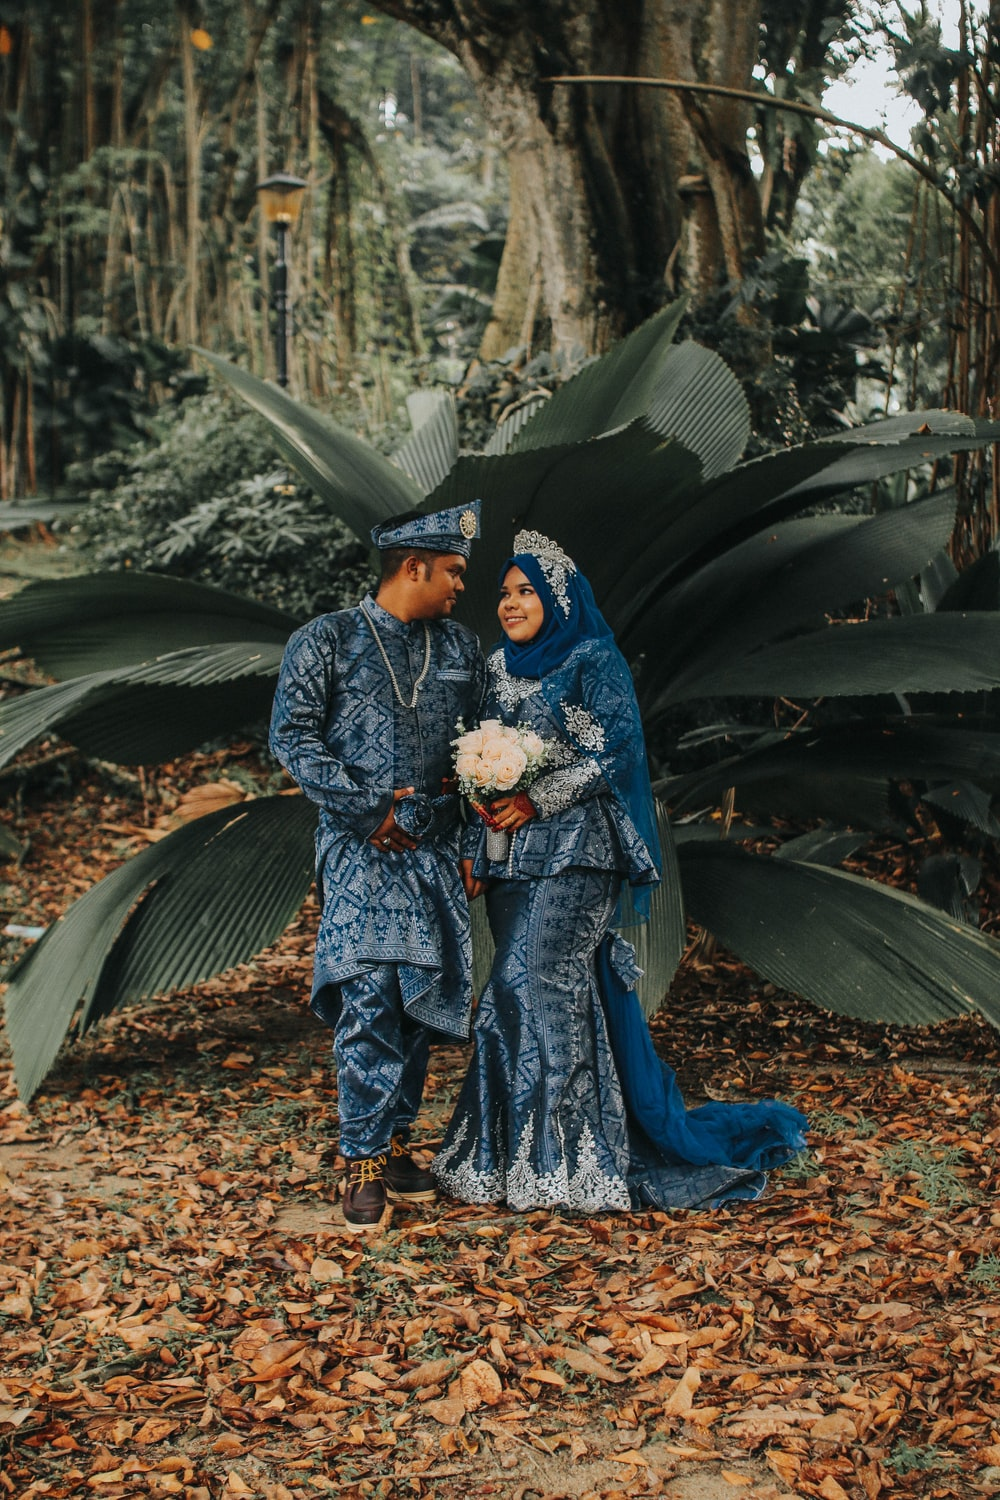 couple wearing matching thobe and dress in front of green plant during daytime